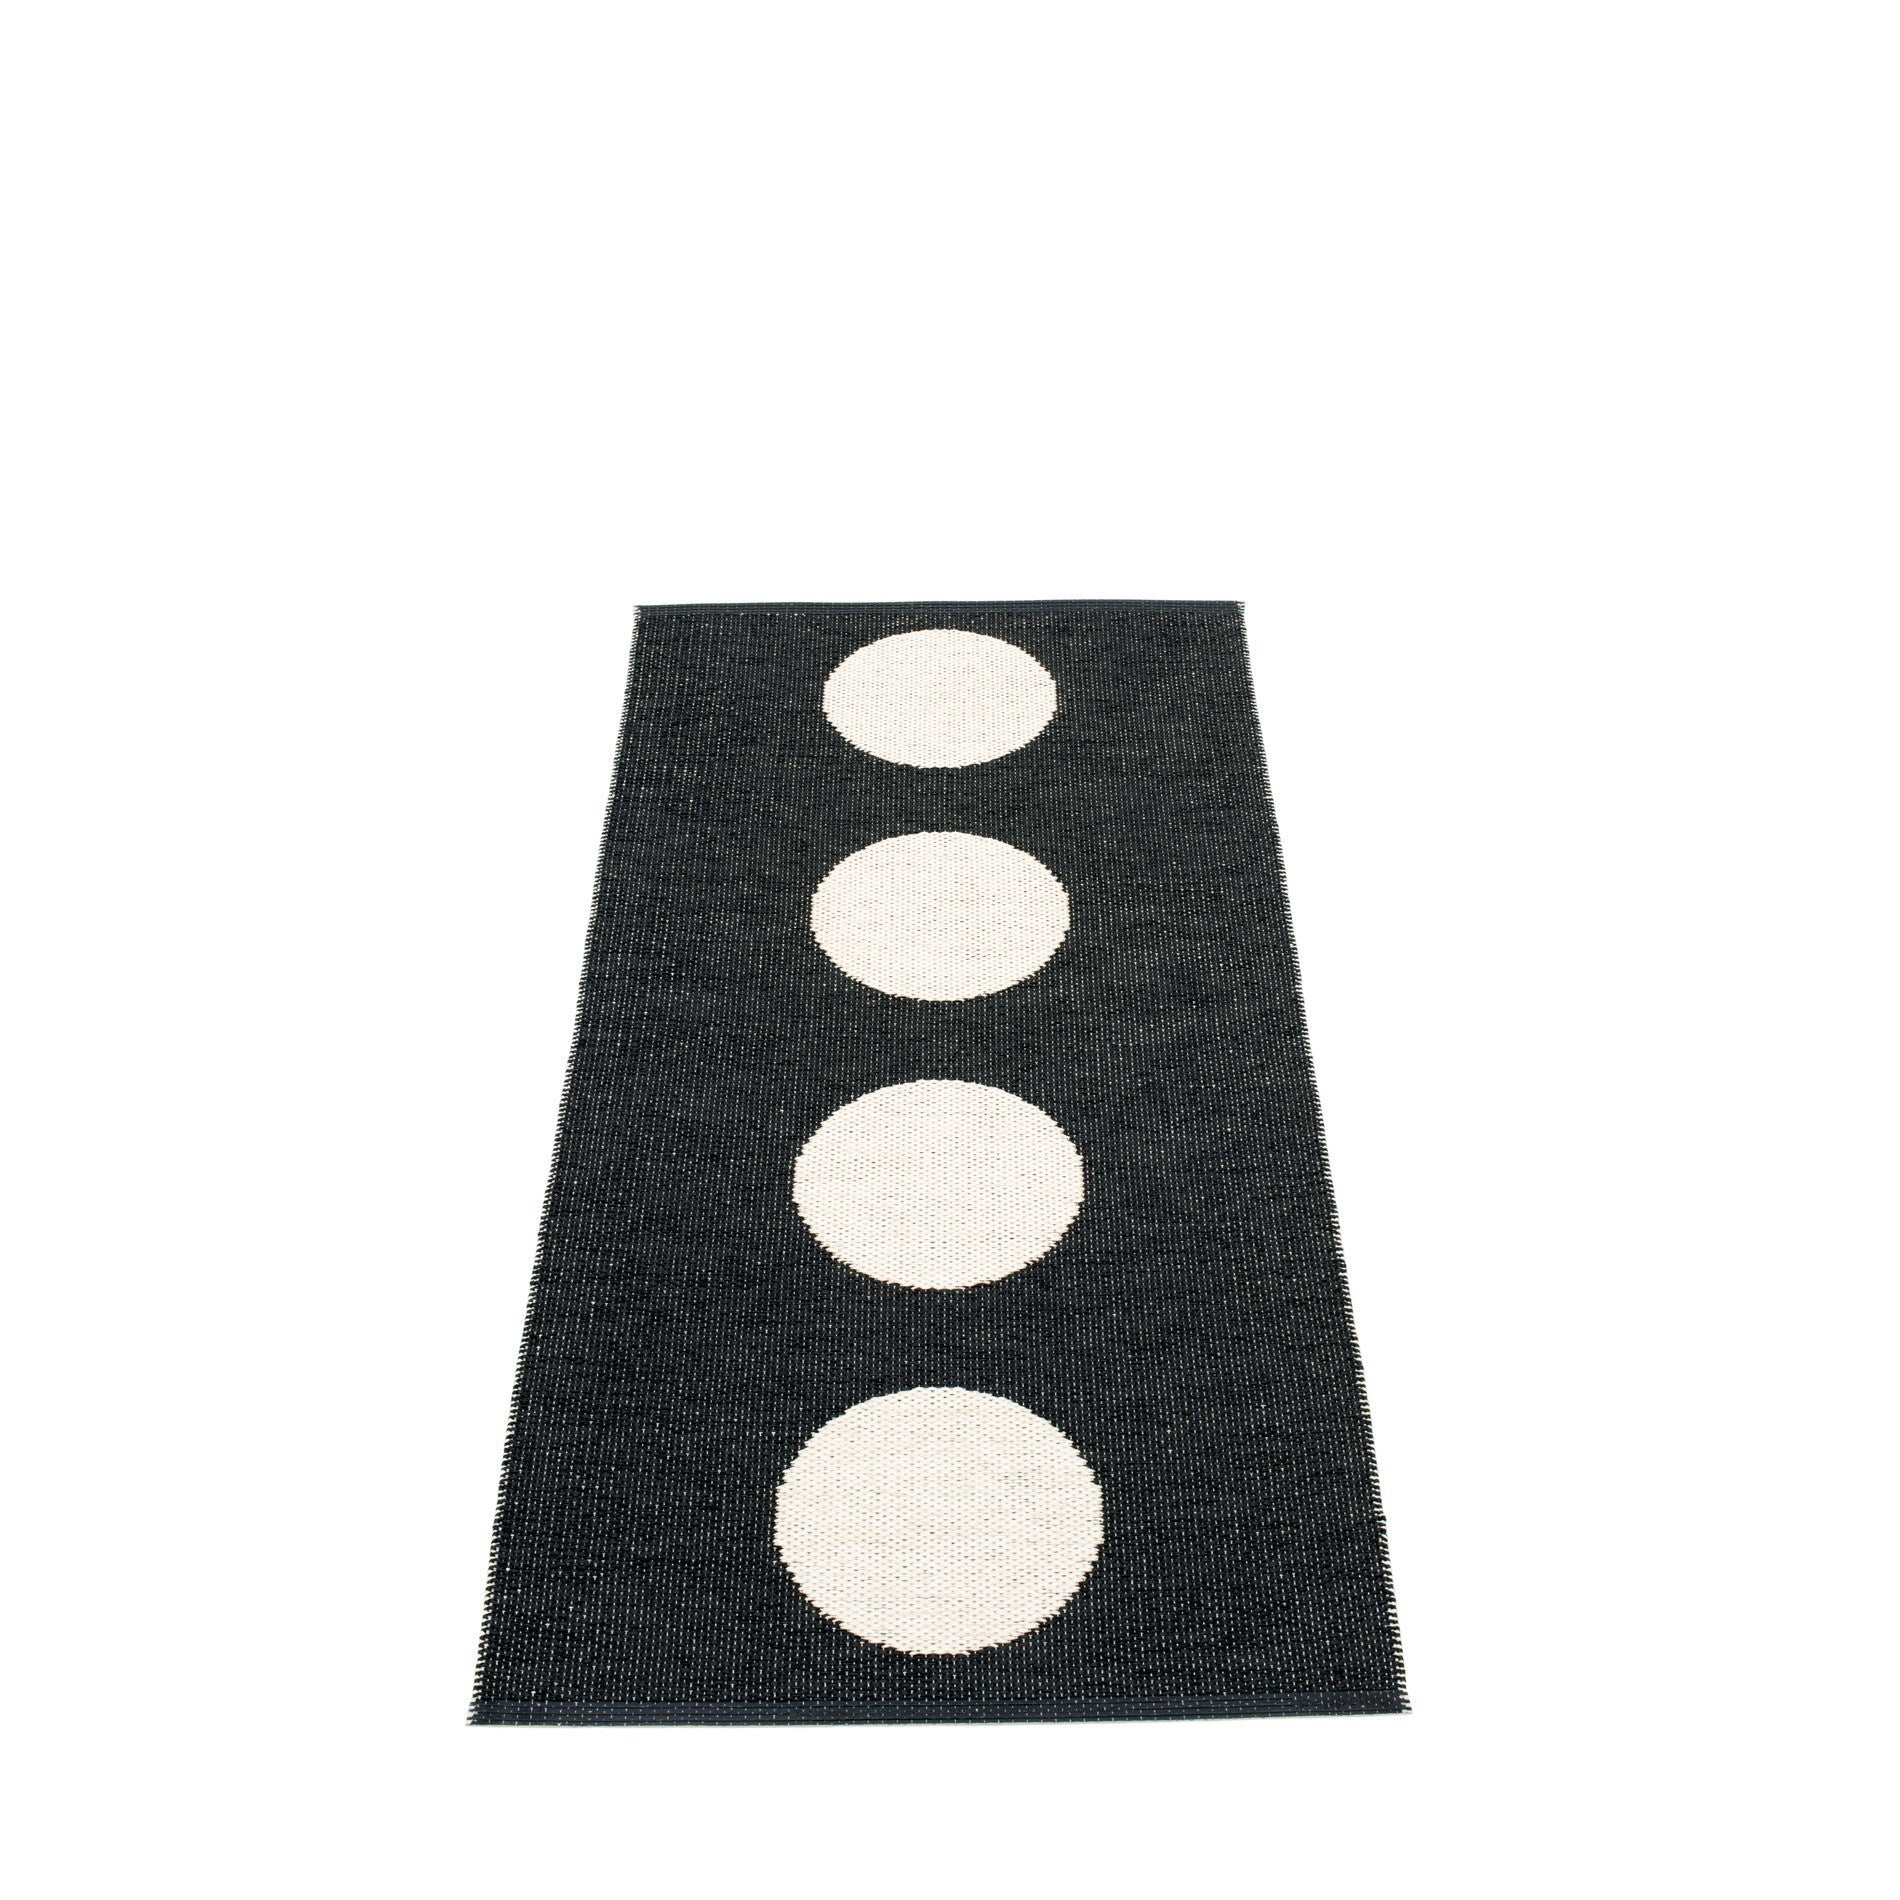 "Pappelina Indoor-Outdoor Plastic Rug - Vera Black & Vanilla (70cm x 150cm) or (27.6"" x 59.1"")"